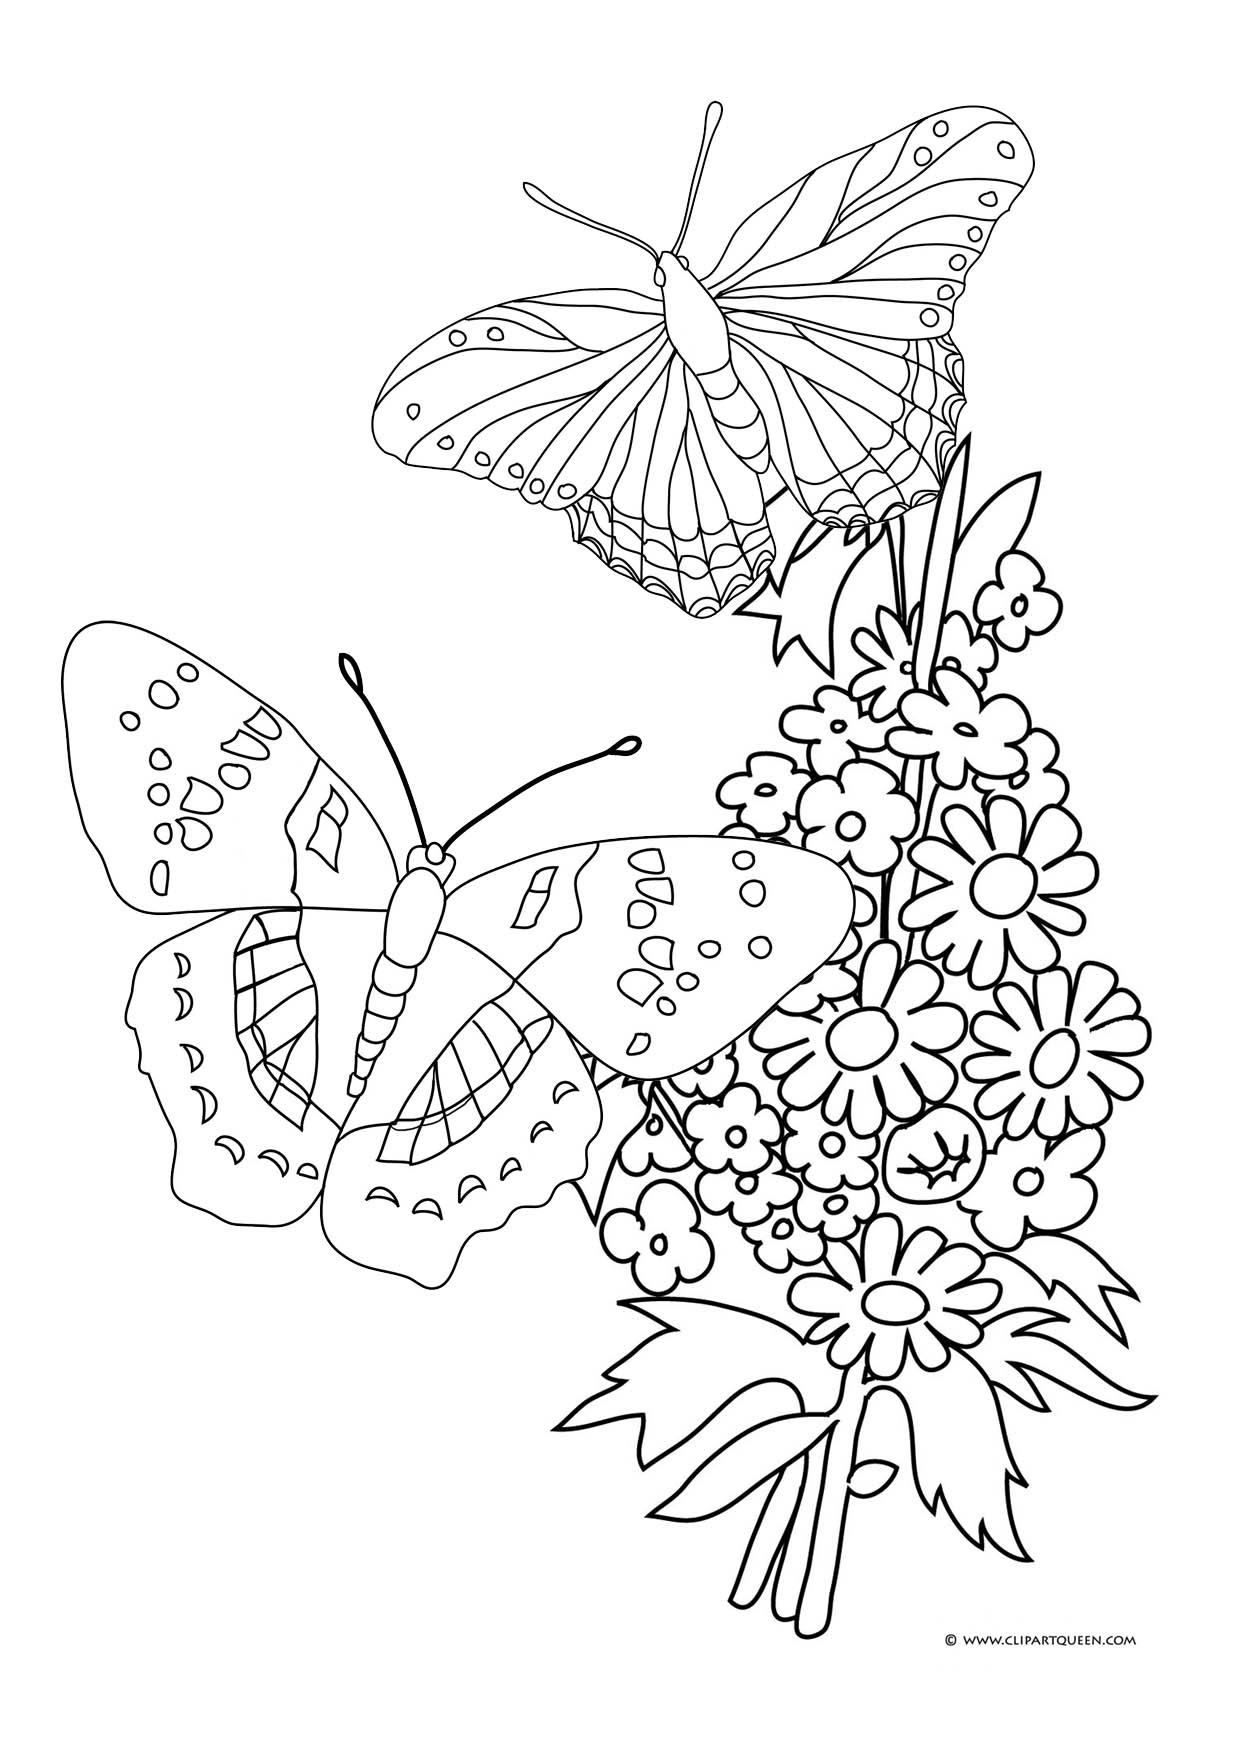 1240x1754 butterfly coloring pages - Butterflies To Color 2